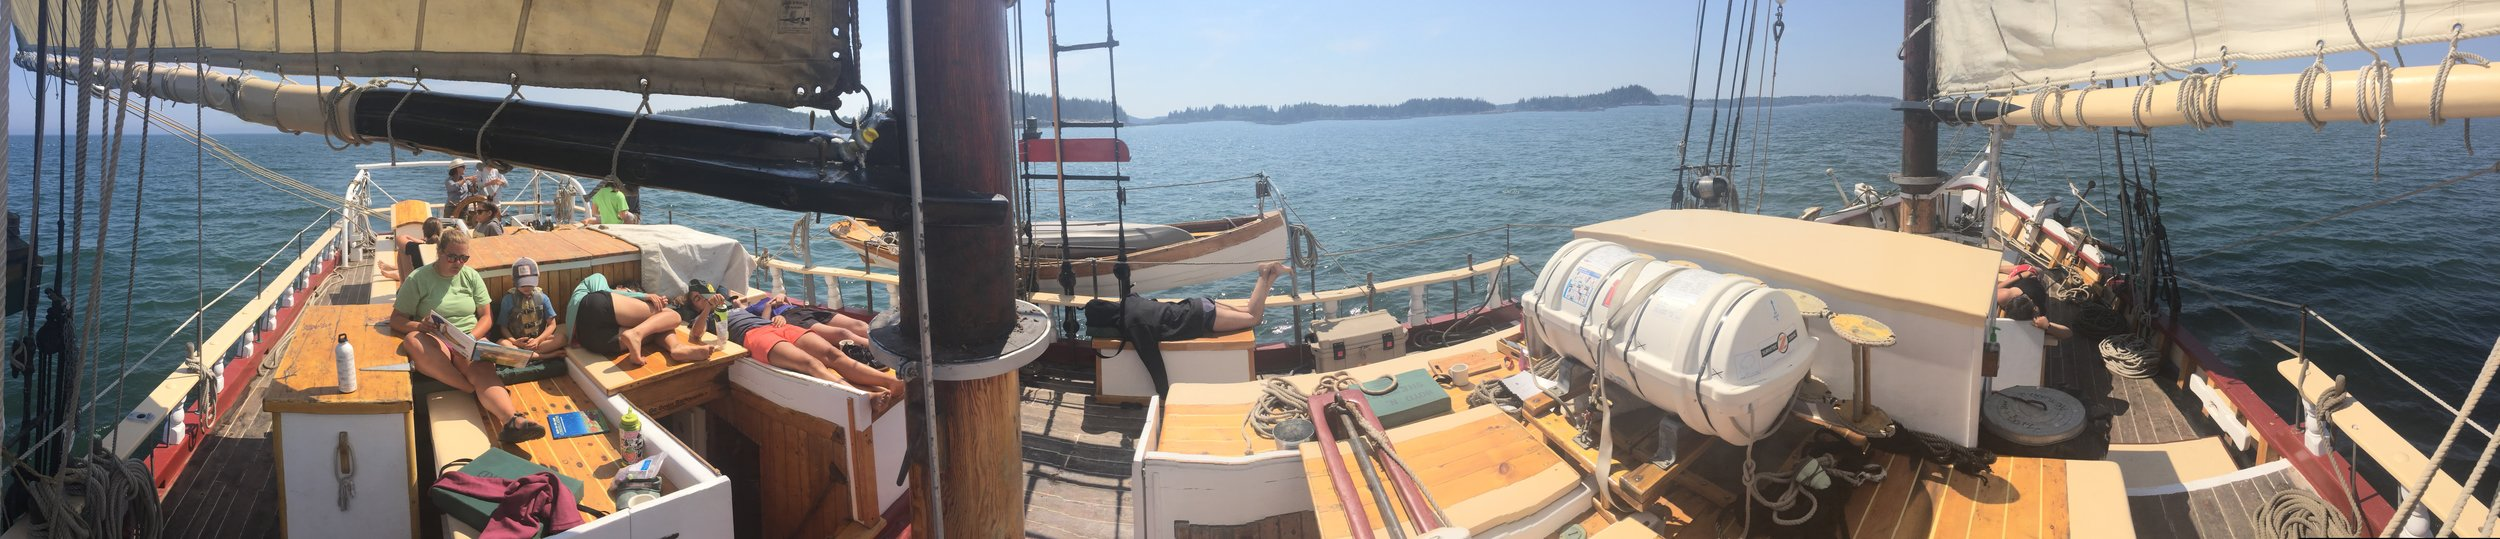 A panorama of our first day sailing on the Boyd N. Sheppard where most folks were feeling a tad green around the gills and had to take a nap.